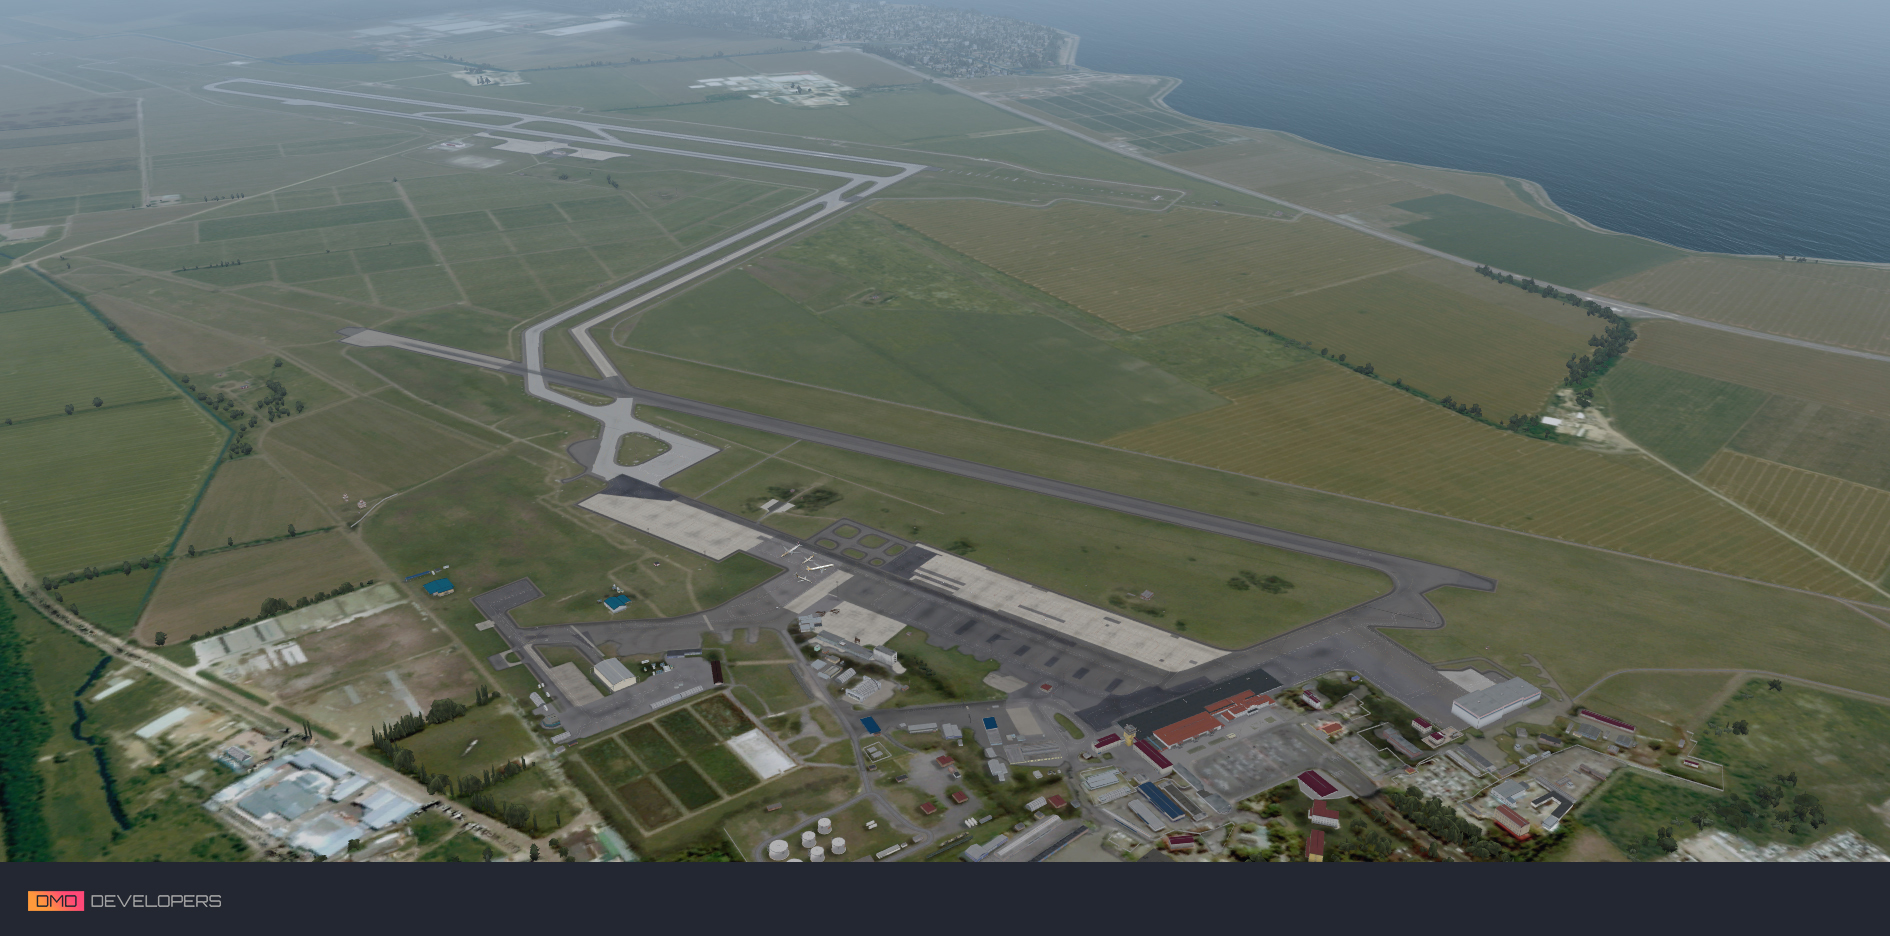 DMD DEVELOPERS - KRASNODAR (PASHKOVSKY) AIRPORT FSX/PREPAR3D